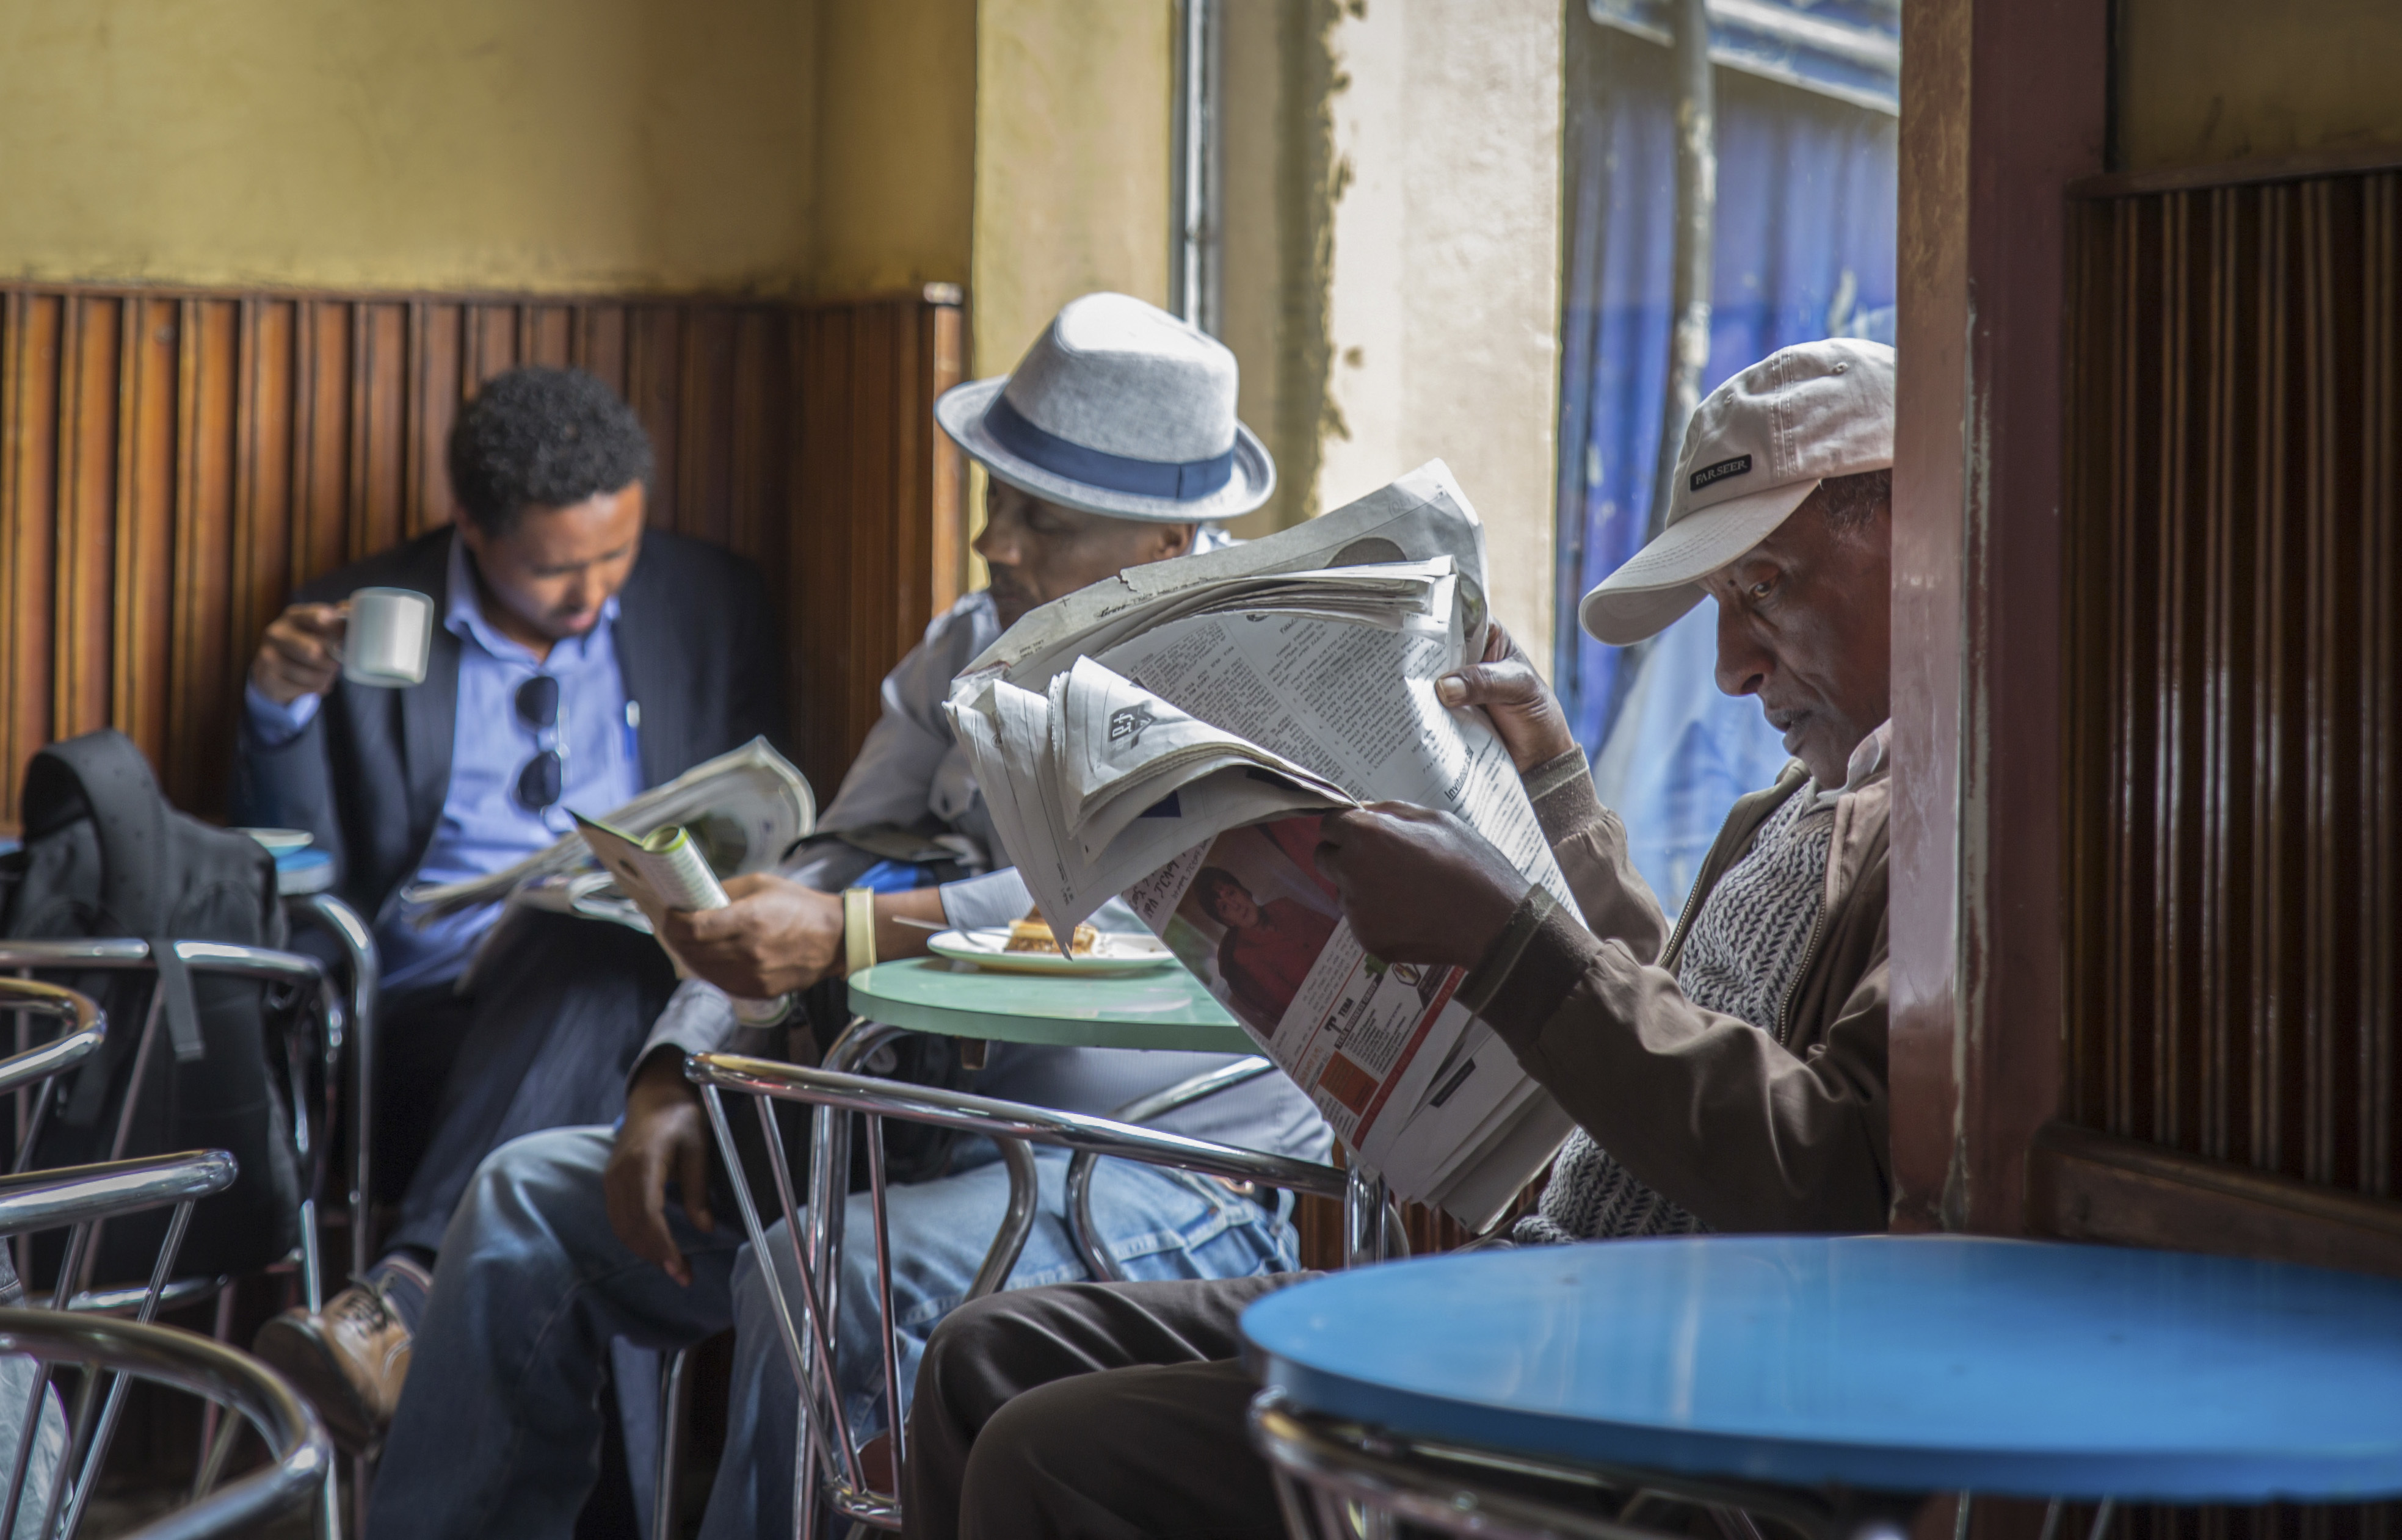 Reading the newspapers in Addis Ababa, Ethiopia.